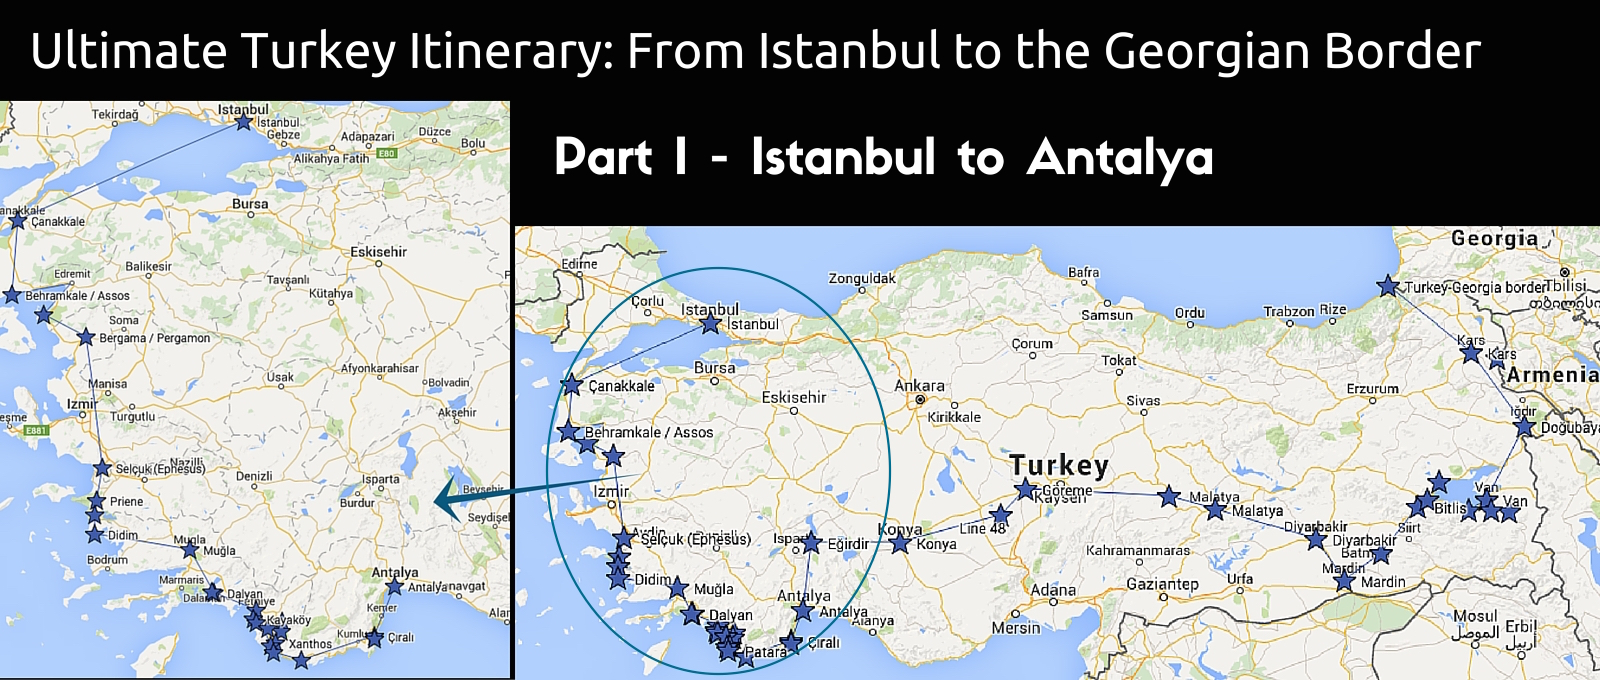 Istanbul to Antalya route | Ultimate Turkey itinerary